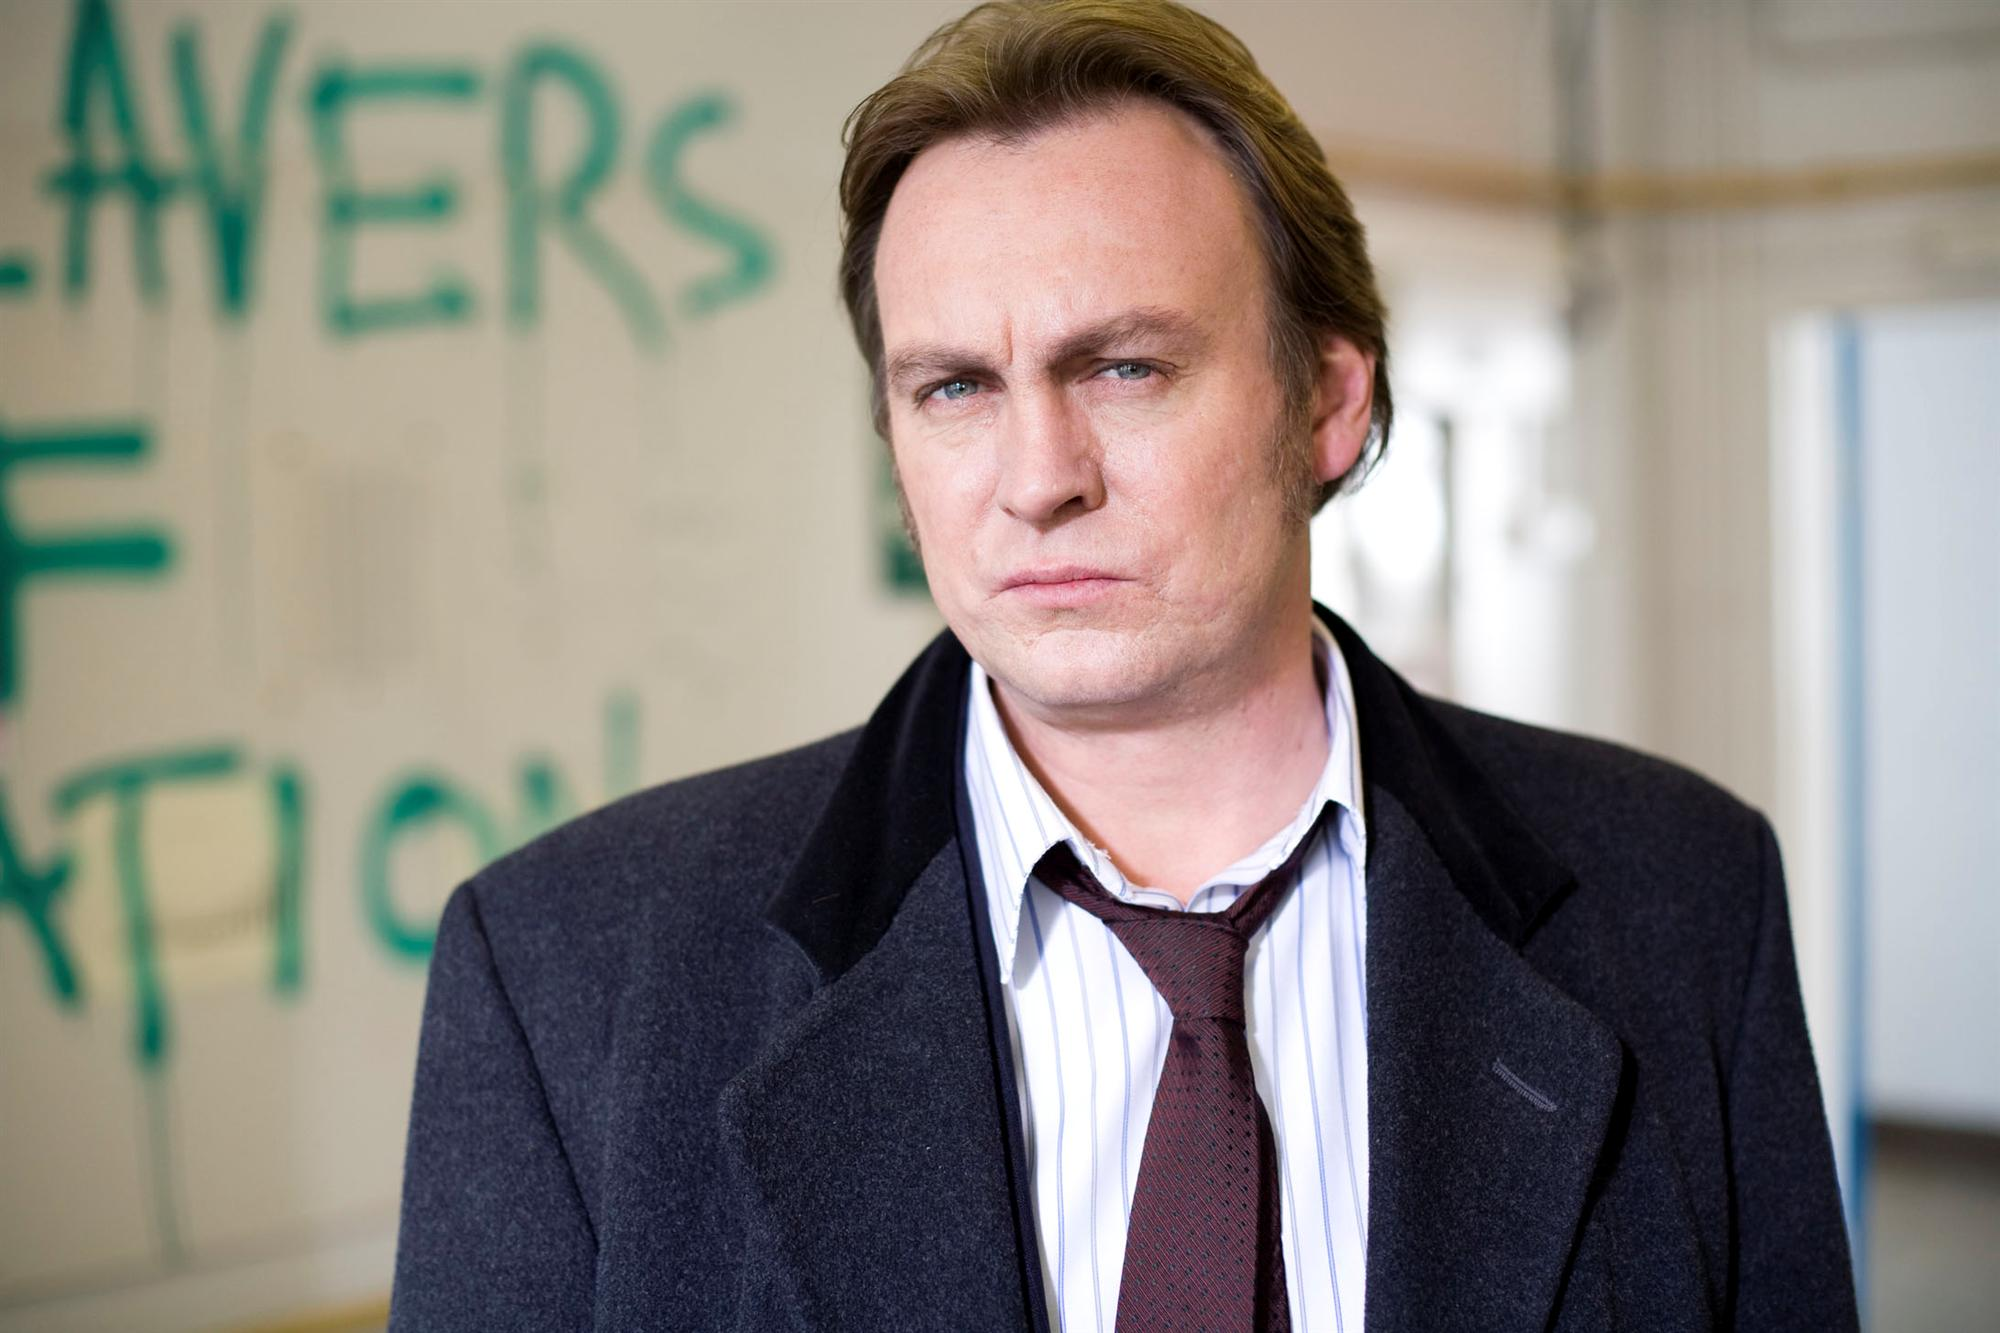 Philip Glenister (born 1963) nudes (95 photo), Ass, Cleavage, Selfie, butt 2020